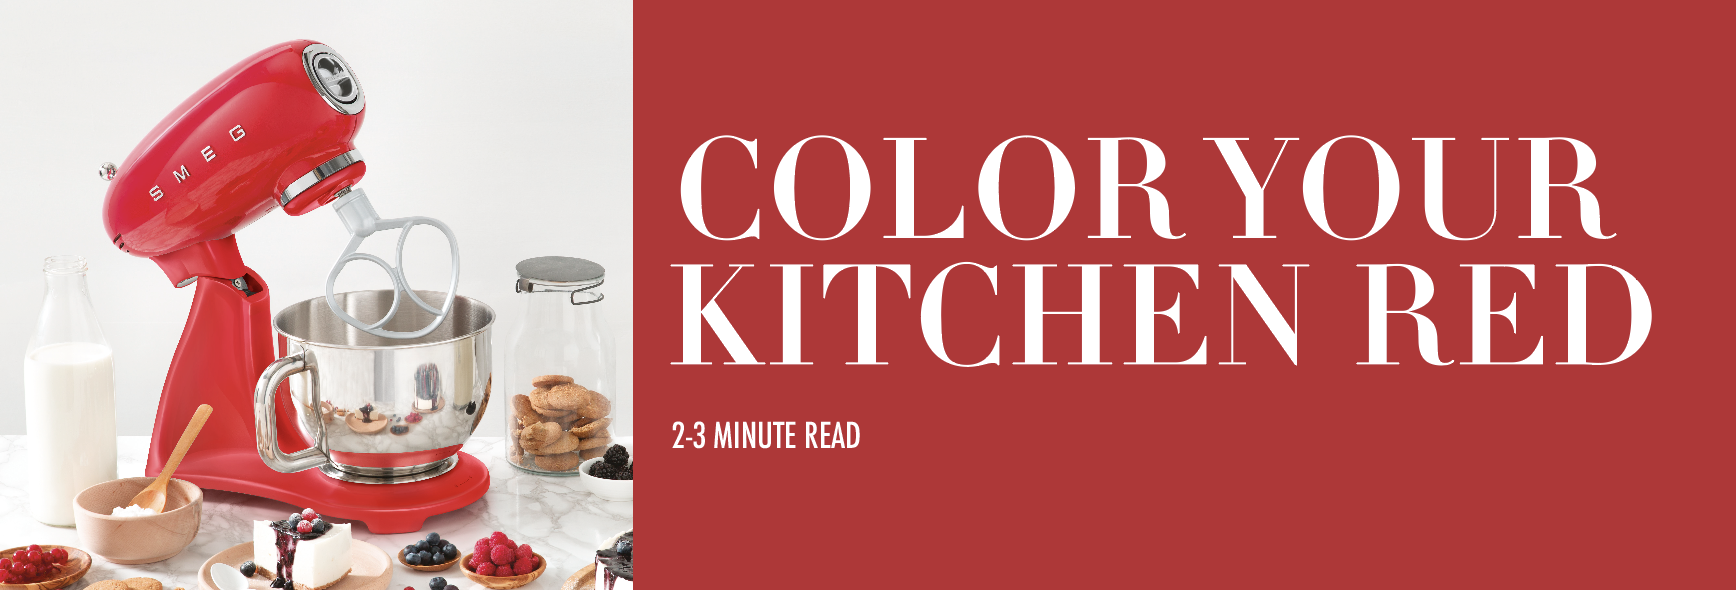 Color Your Kitchen Red